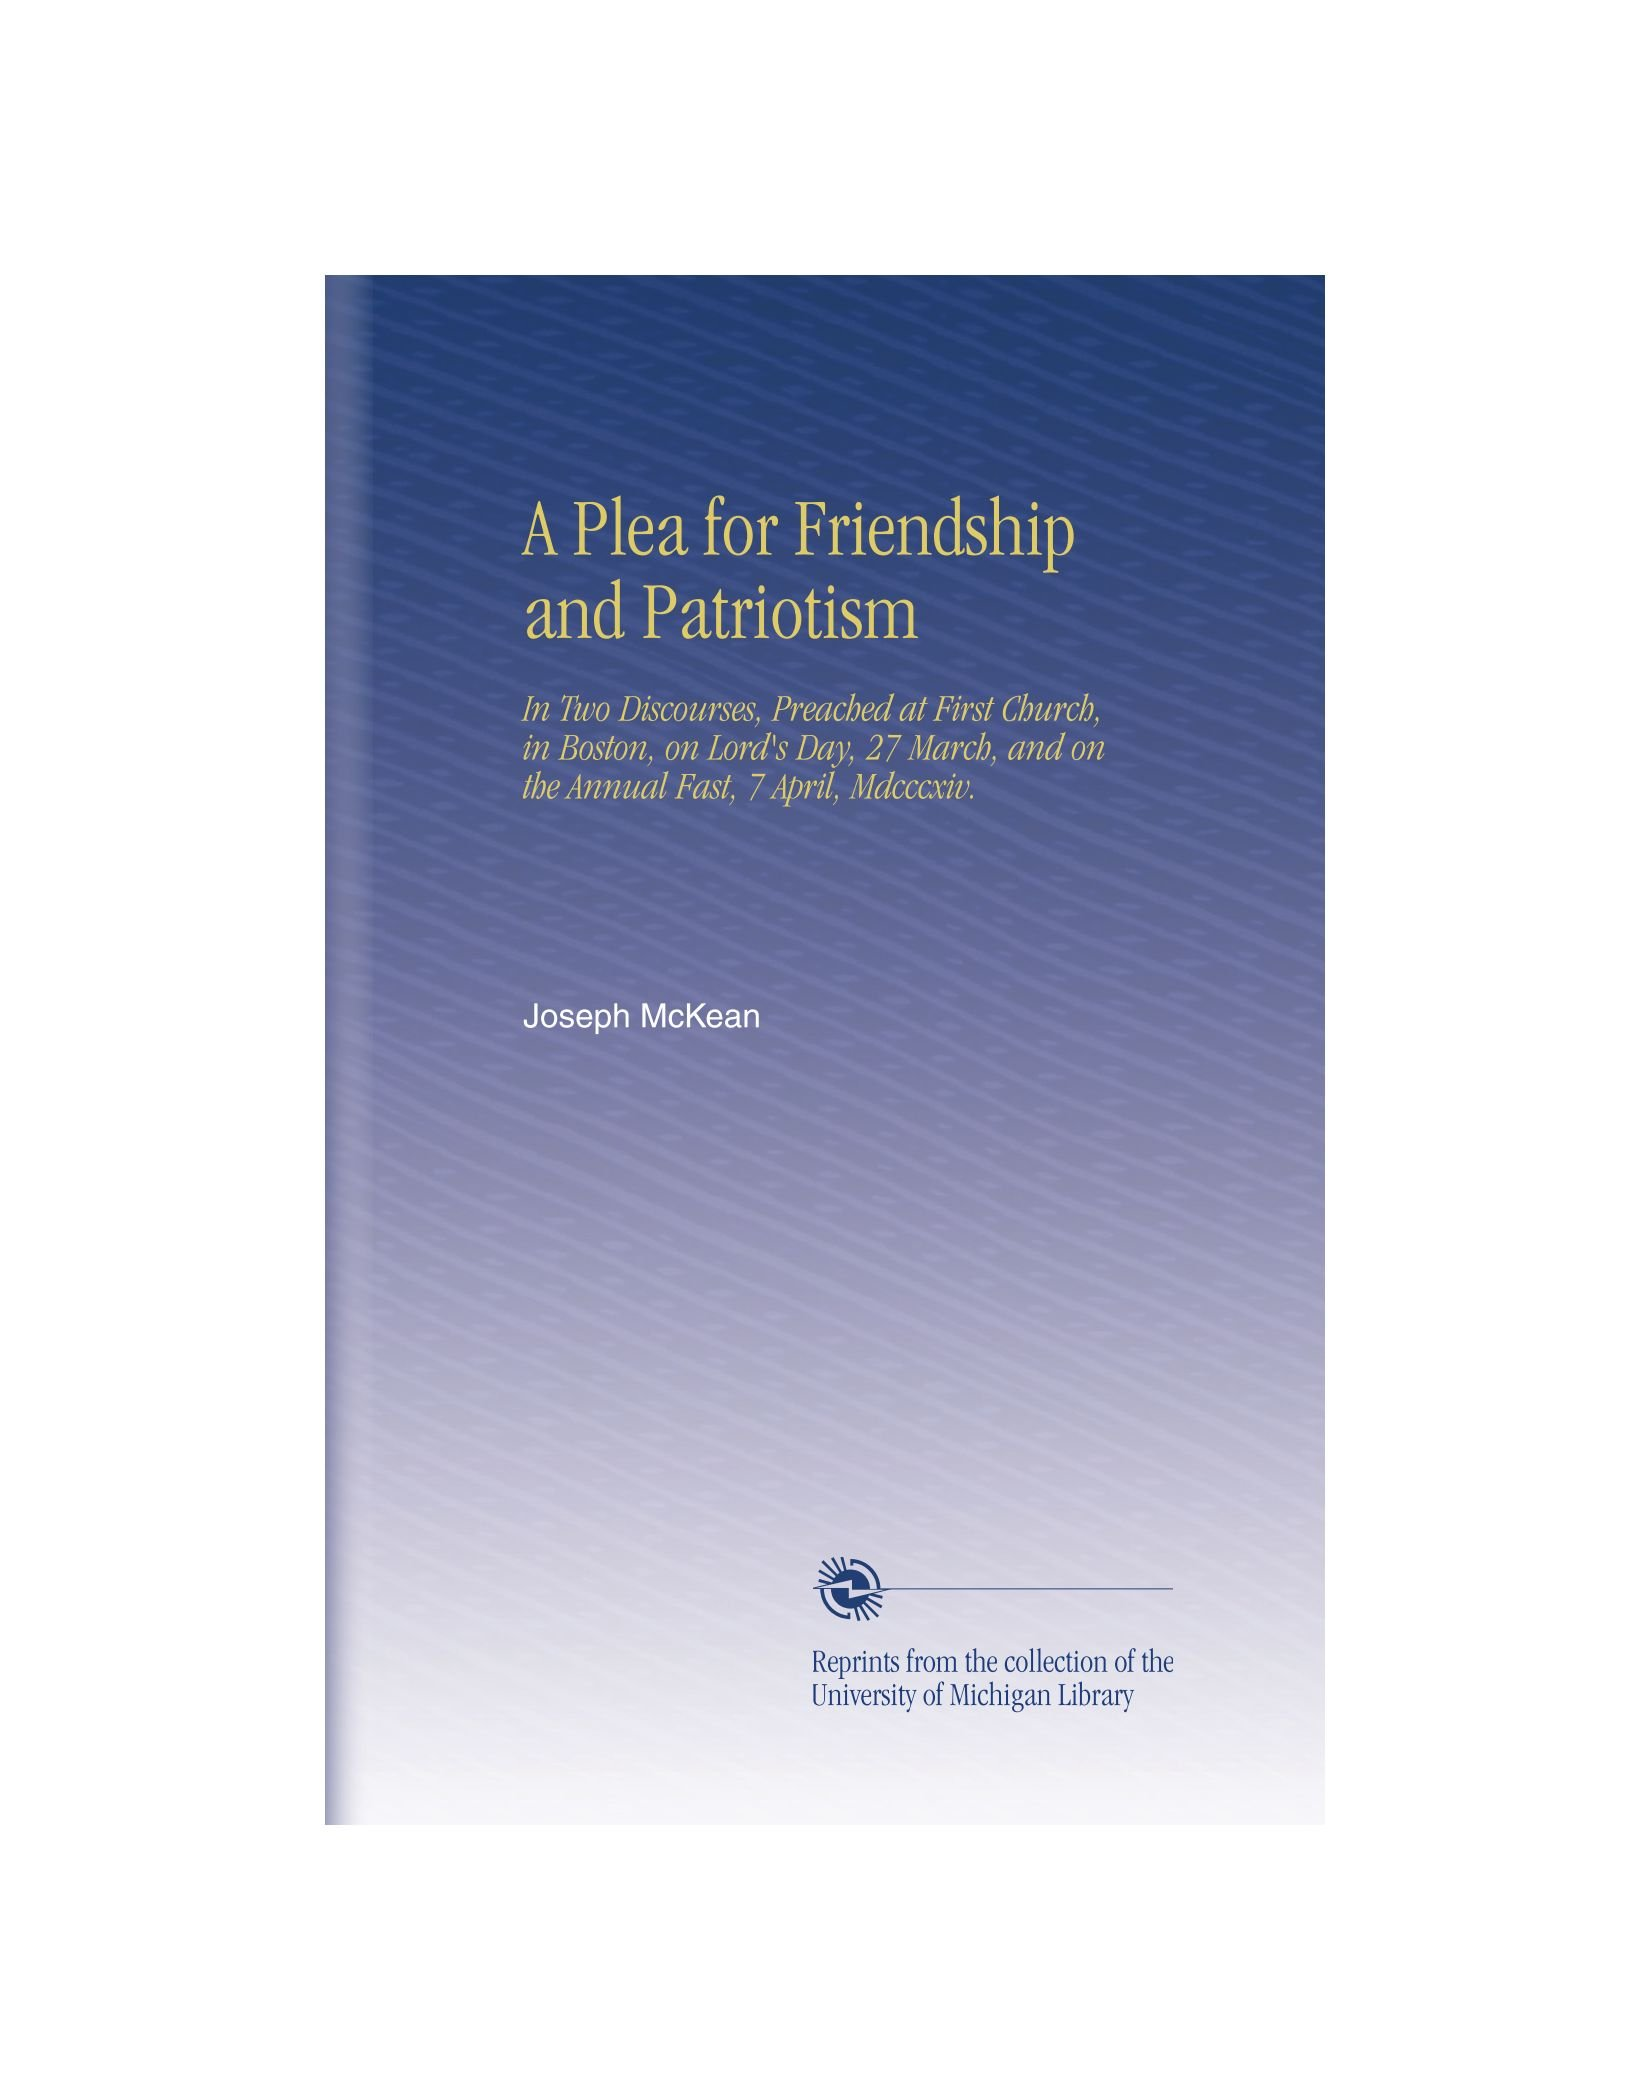 Read Online A Plea for Friendship and Patriotism: In Two Discourses, Preached at First Church, in Boston, on Lord's Day, 27 March, and on the Annual Fast, 7 April, Mdcccxiv. pdf epub